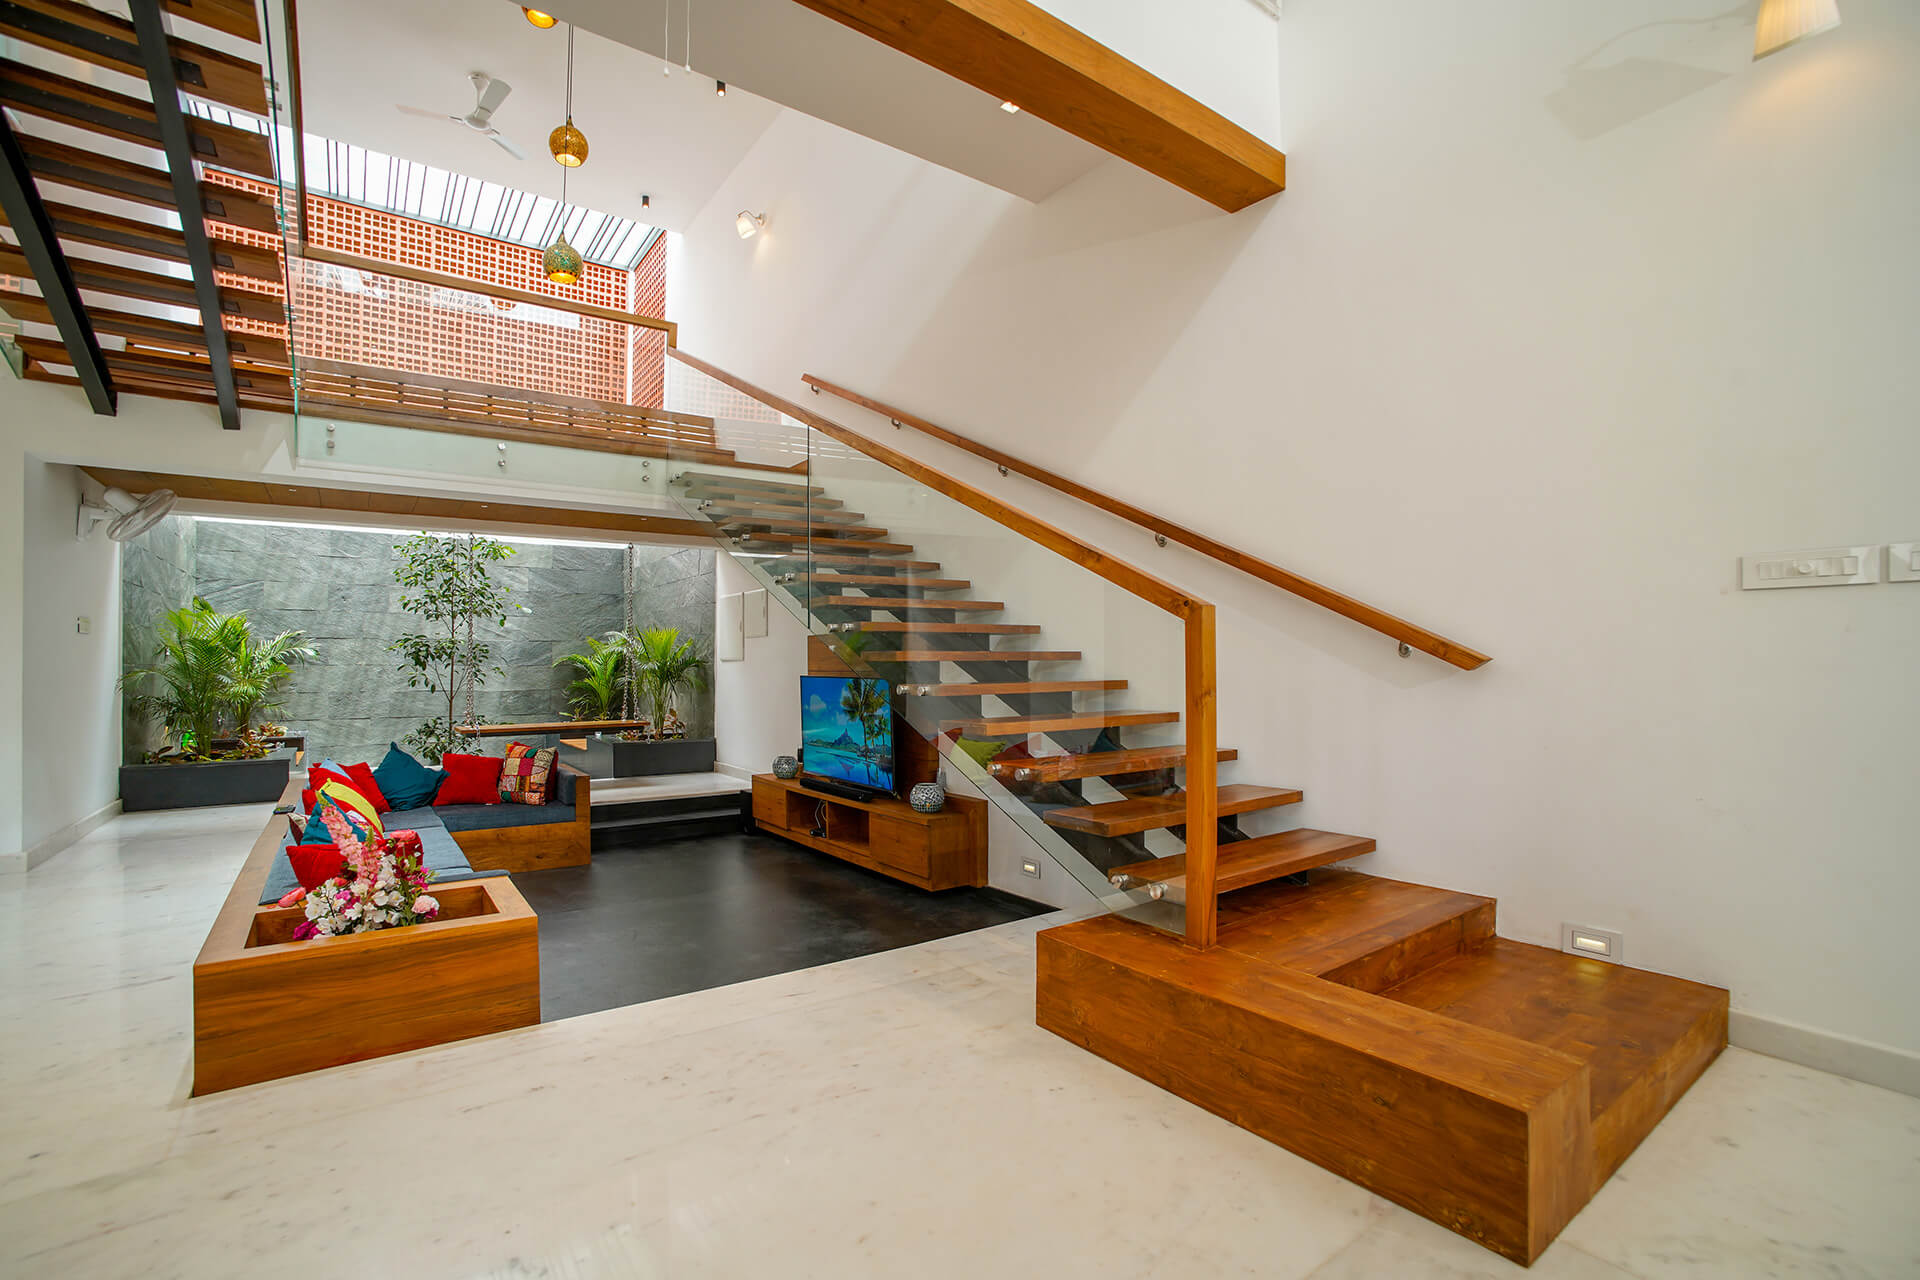 Inside the Box House | Box House designed by Uru Consulting | STIRworld